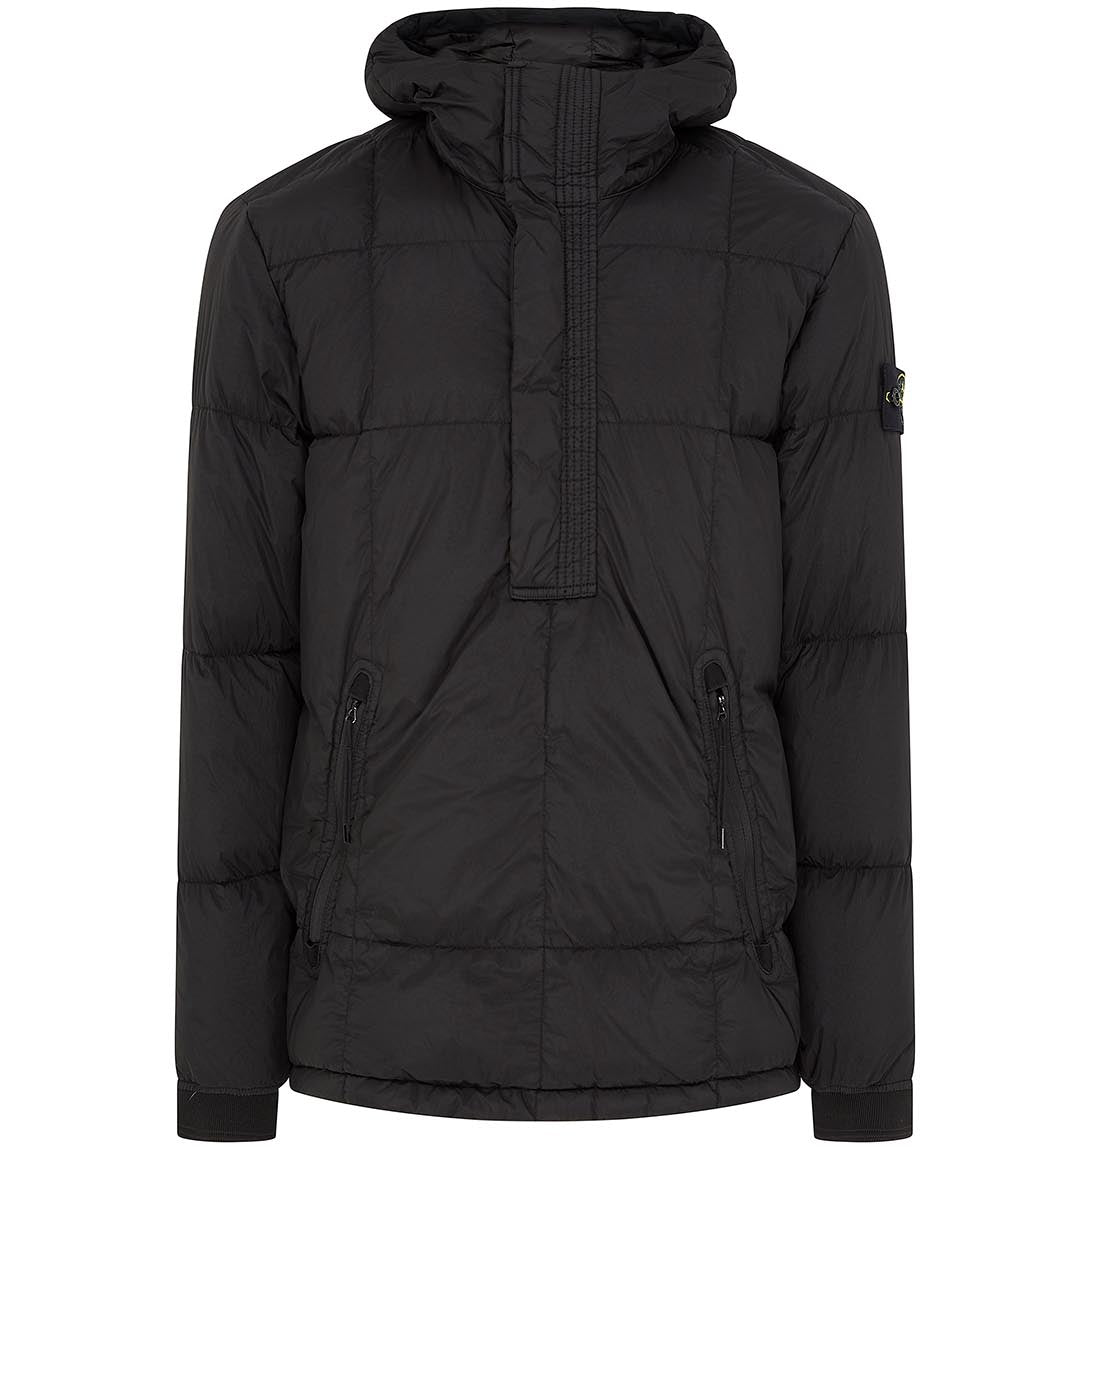 41323 GARMENT-DYED CRINKLE REPS NY DOWN Jacket in Black